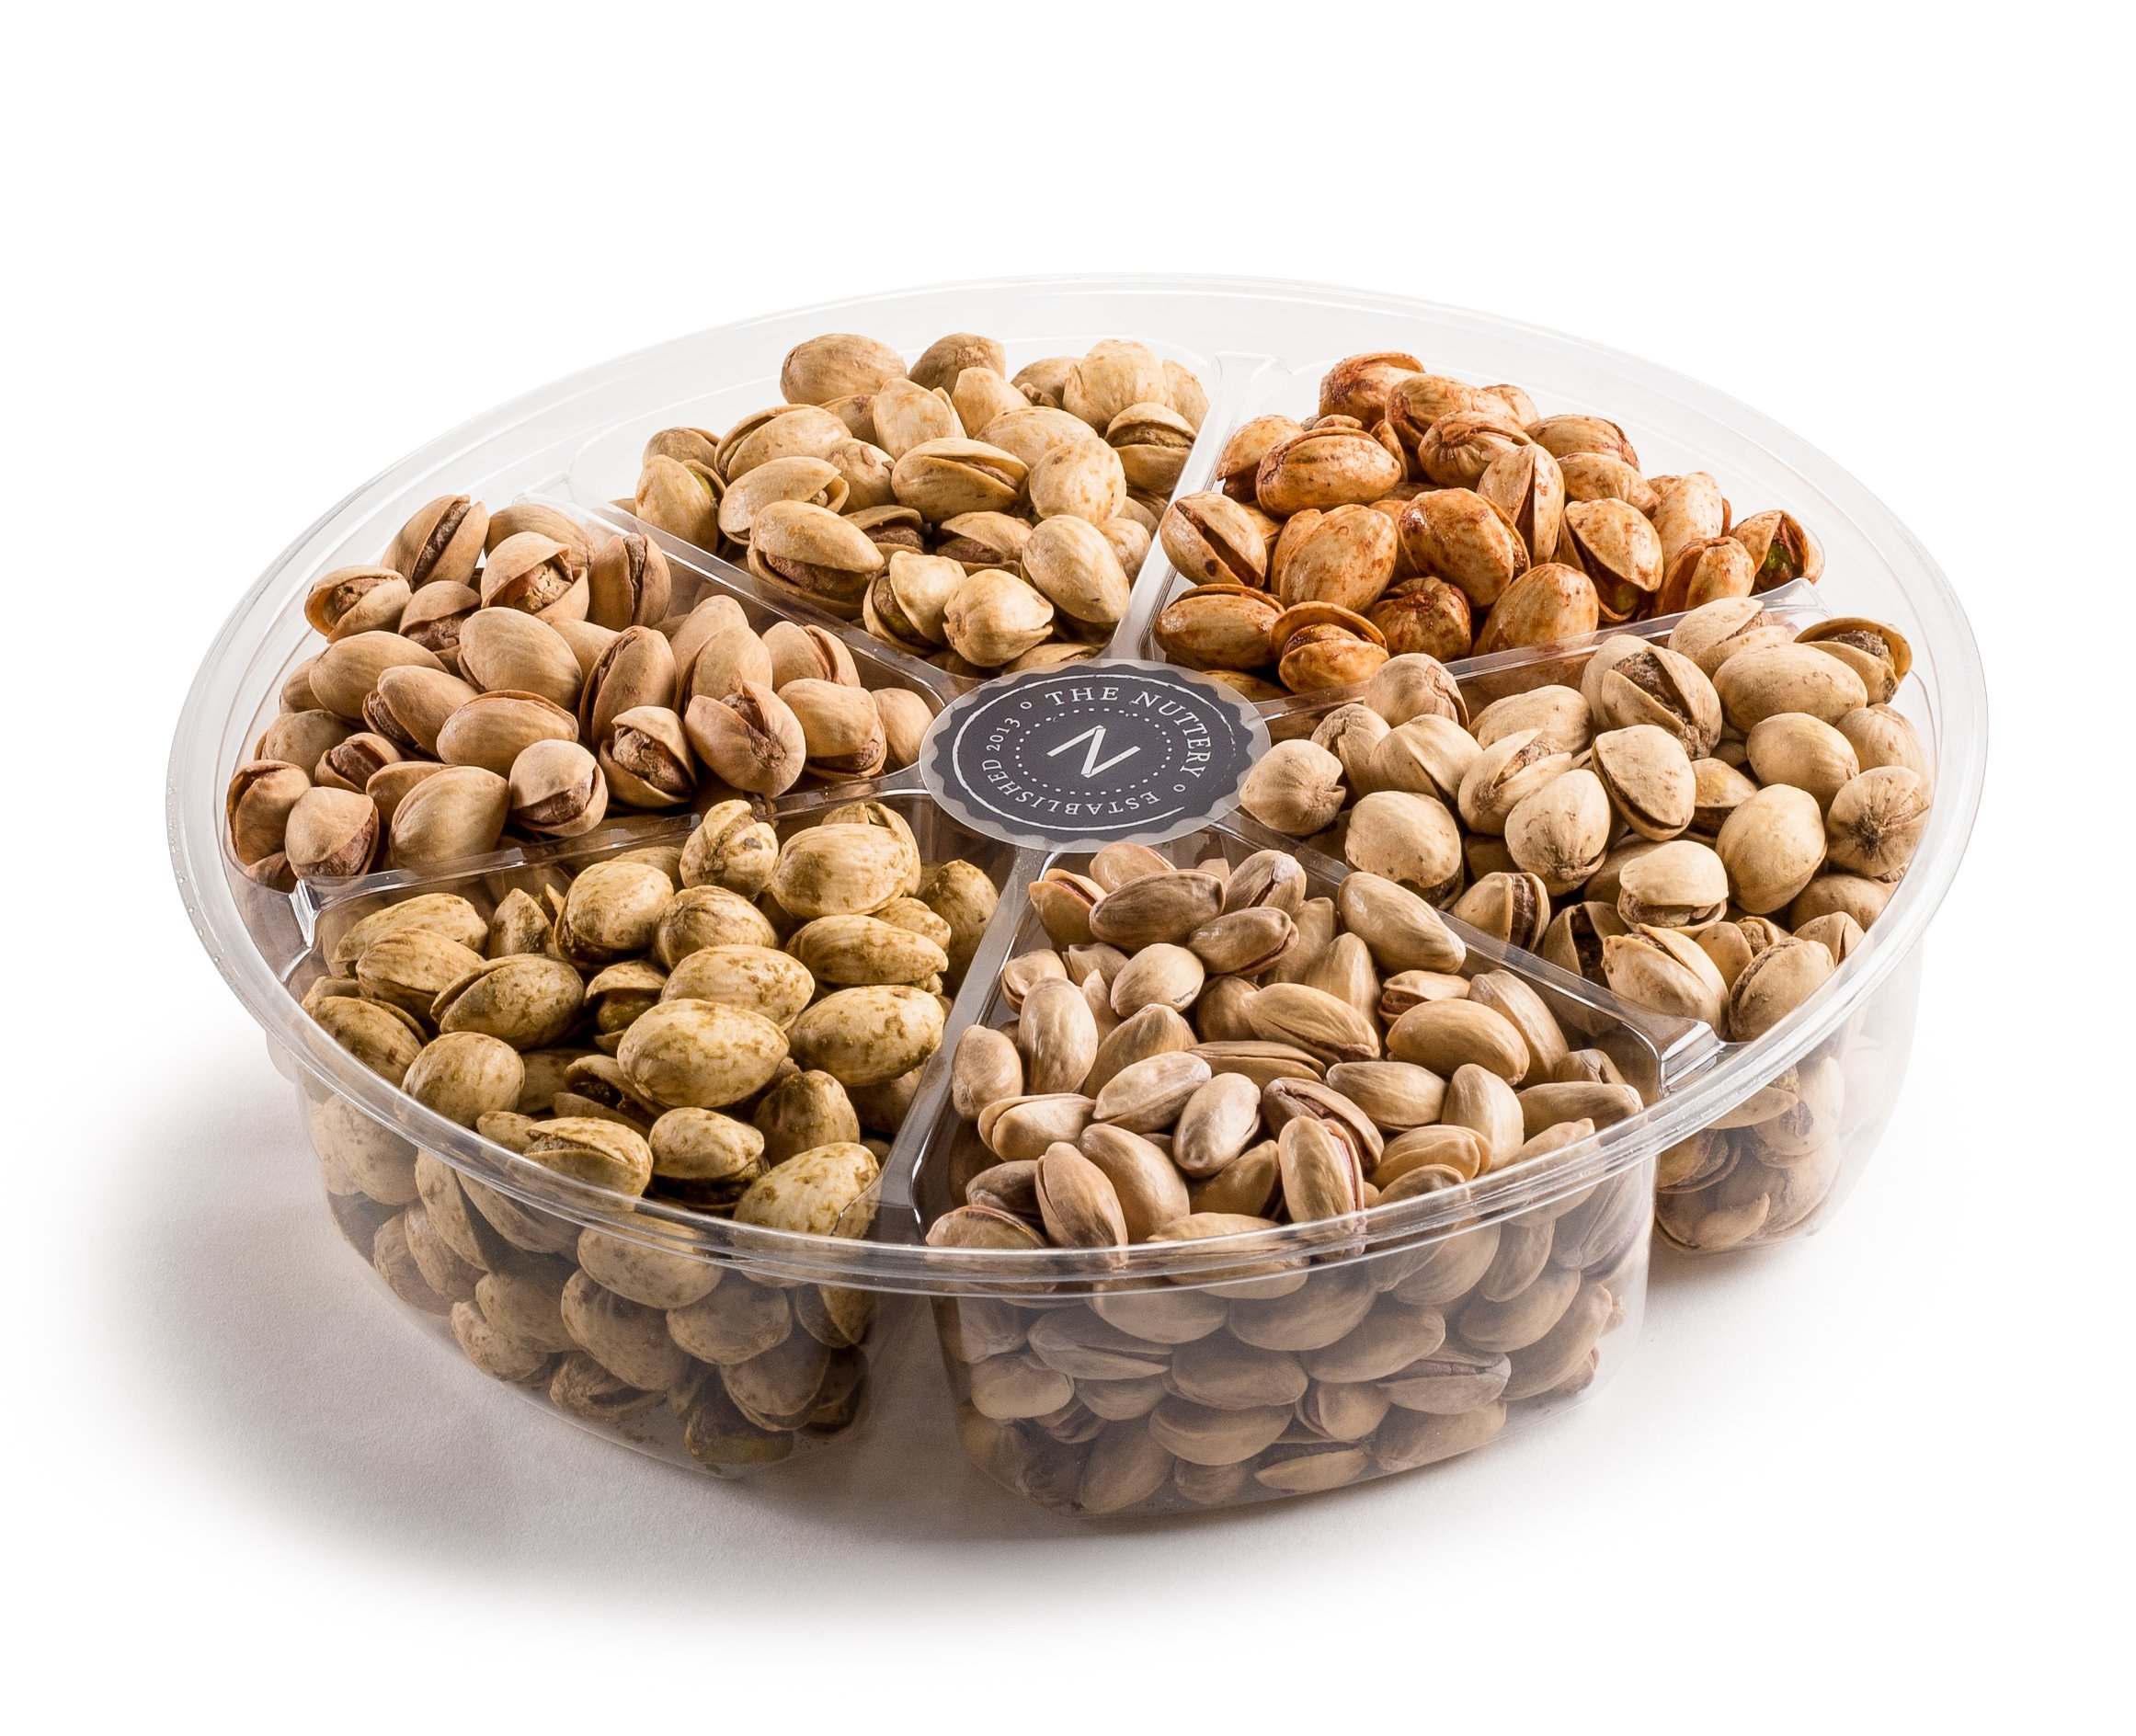 The Nuttery Assorted Pistachios Gift Tray in 6 Flavors: Turkish, Jalapeno, Onion Garlic, Salt & Pepper, Chile, and Roasted & Salted Pistachio Nuts